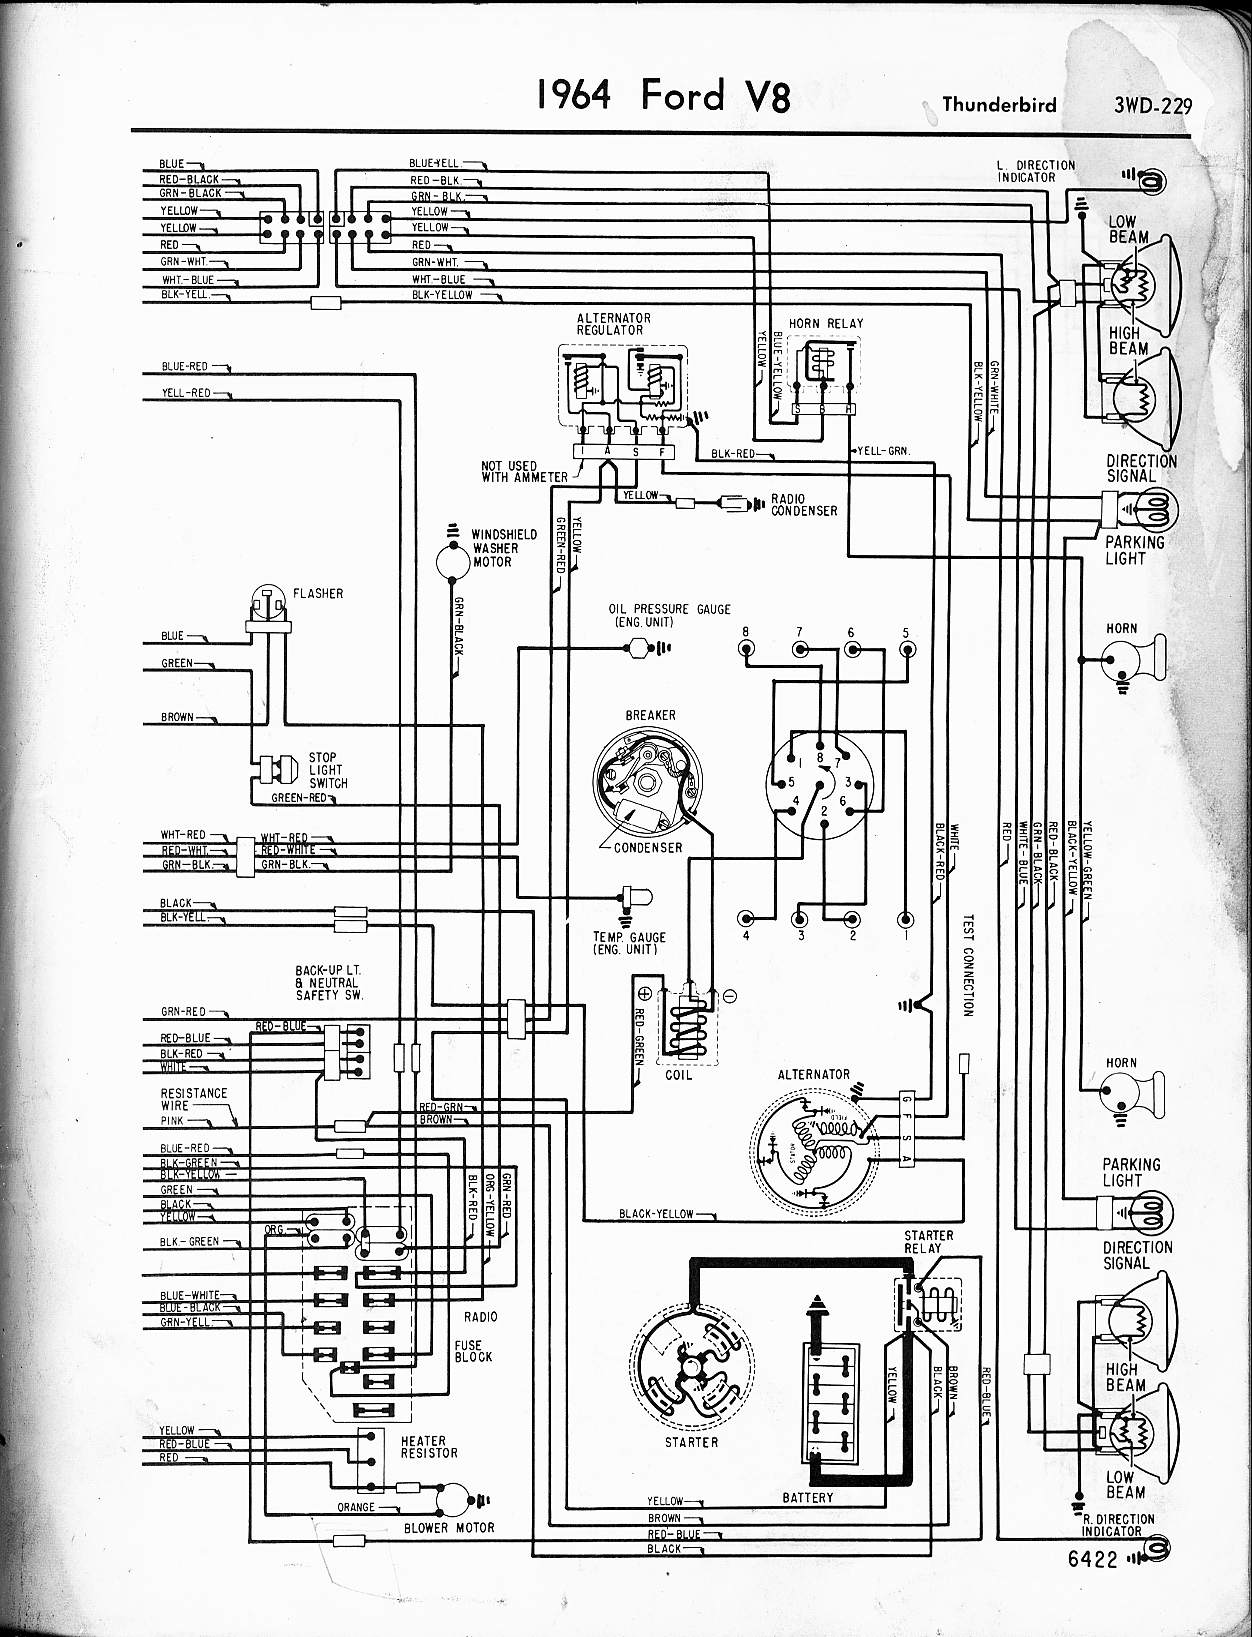 1964 Ford Falcon Wiring Diagram from static-resources.imageservice.cloud